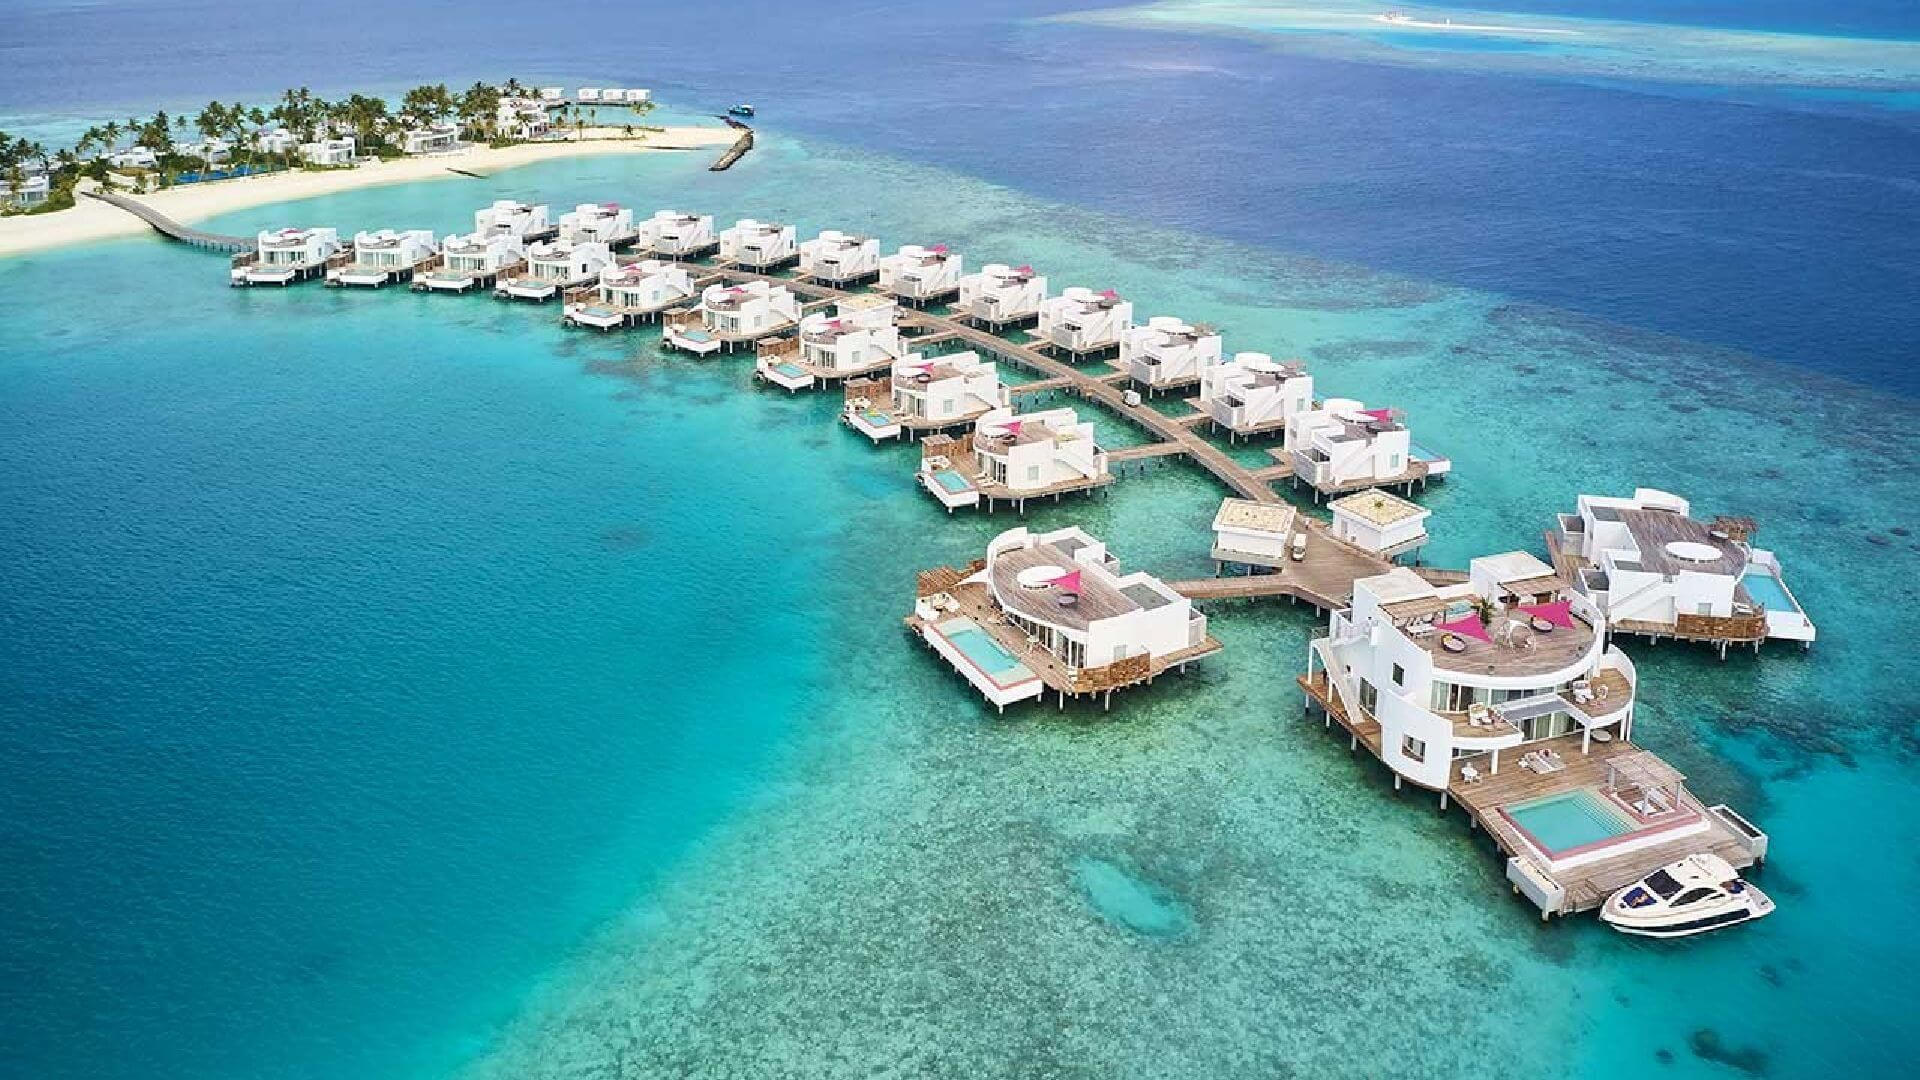 #LUX North Male Atoll #NorthMaleAtoll #Asia #Maldives #Hotels #travel #travelblogger #travelgram #travelguide #travels #travelling #travelblog #traveladdict #traveladikkt #beautifuldestinations #bucketlist #luxury #luxurylifestyle #luxurytravel #luxurydestinations #lifestyle #lifestyleblogger #beautifulplaces #beautifulplace #beautiful #beautifuldestination